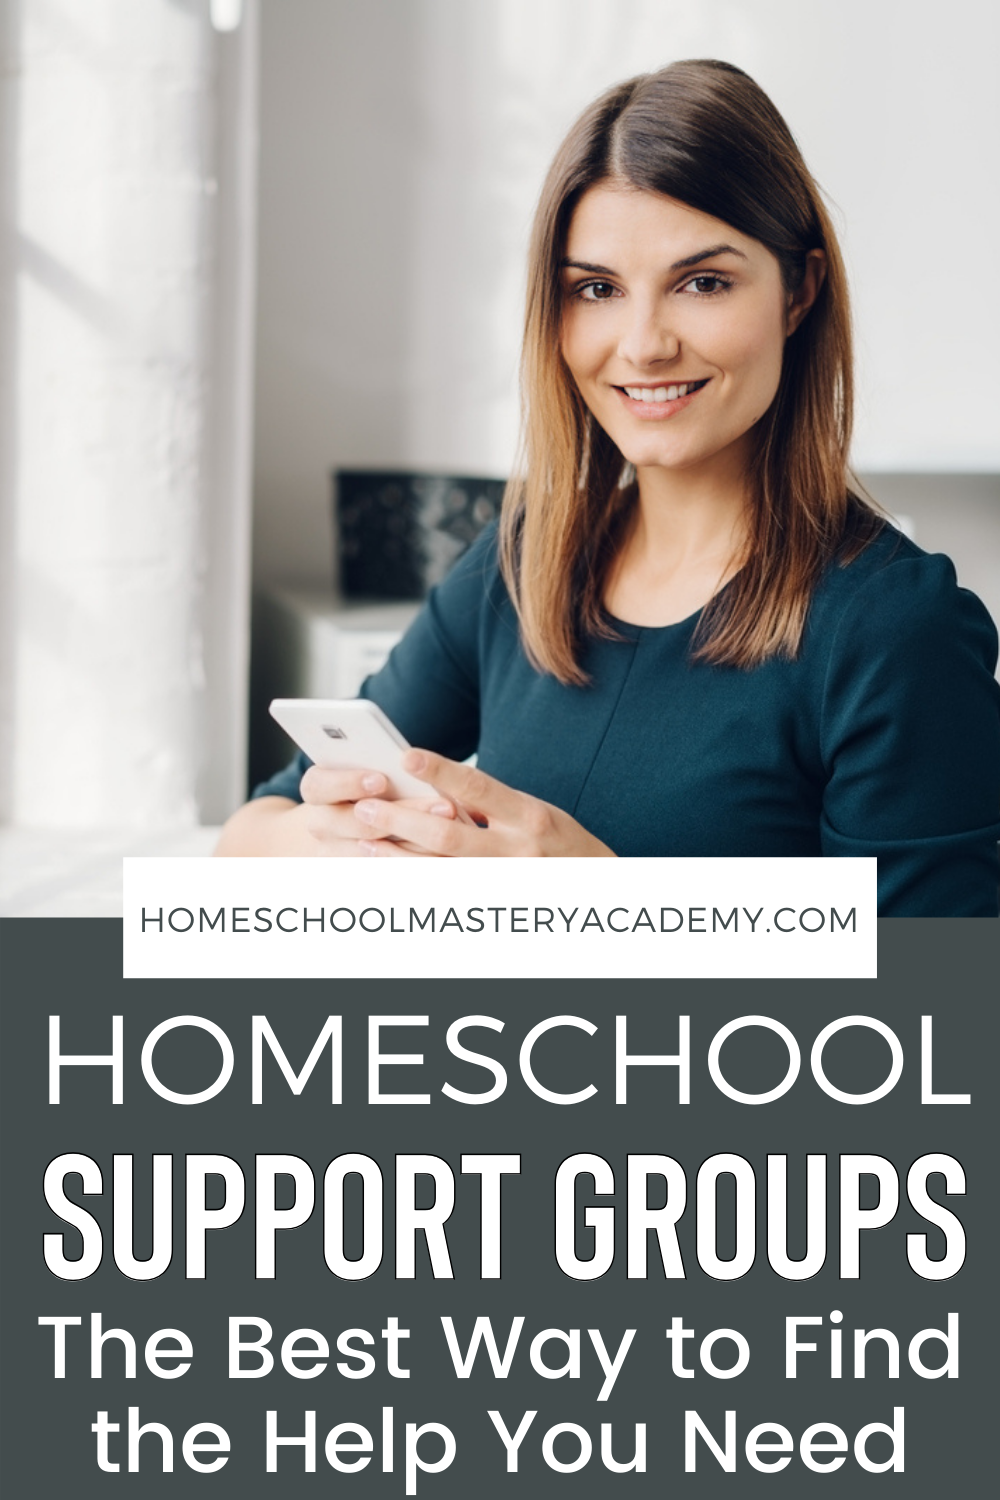 Homeschool Support Groups are a wonderful way to not only connect with others but to get the homeschooling support that you need. Check out the tops 6 homeschool support groups to join. #homeschool #homeschoolsupport #homeschoolgroups #homeschoolhelp